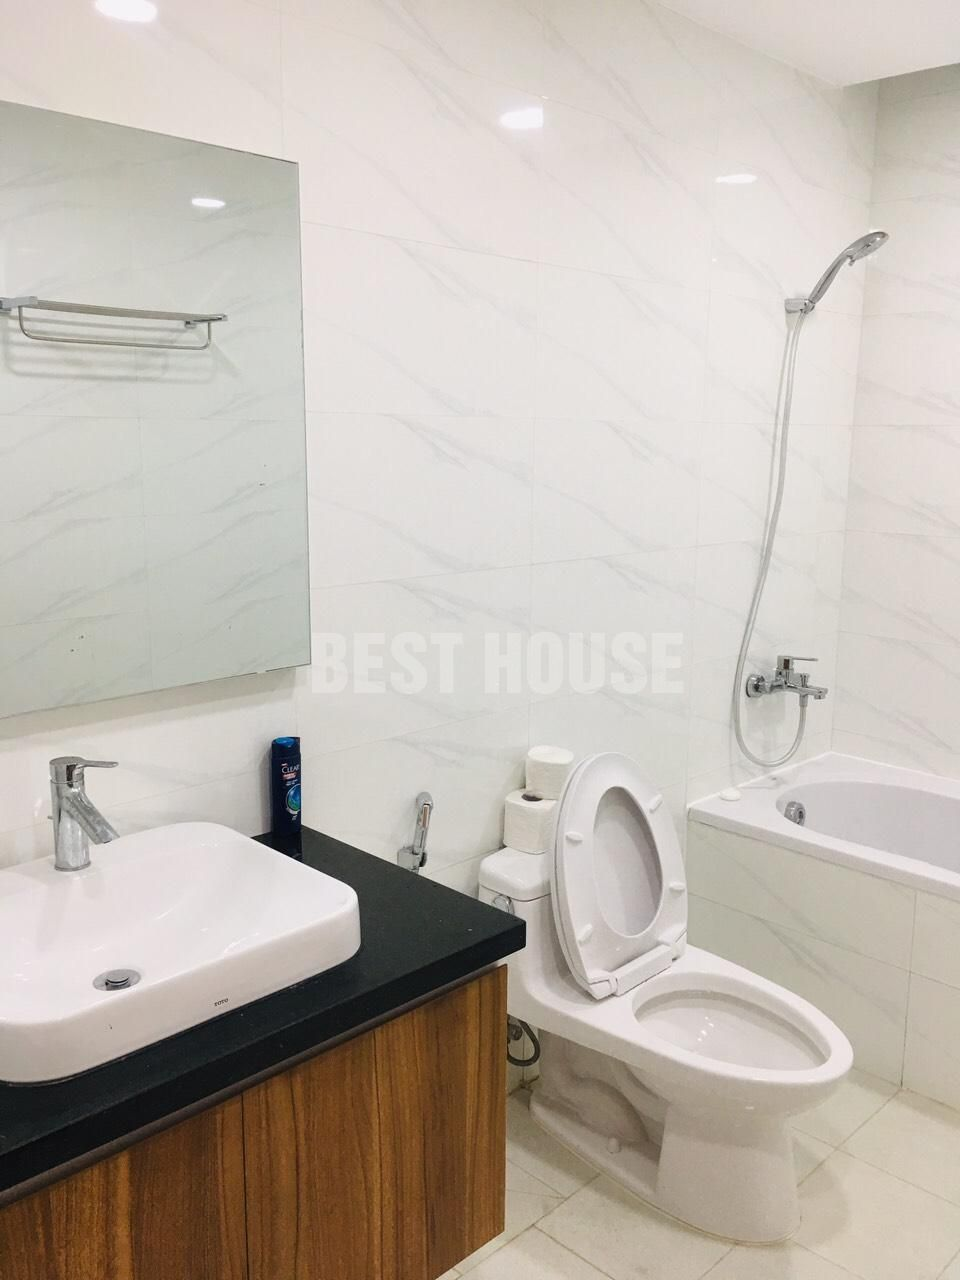 green-valley-apartment-for-rent-in-phu-my-hung-district-7-2